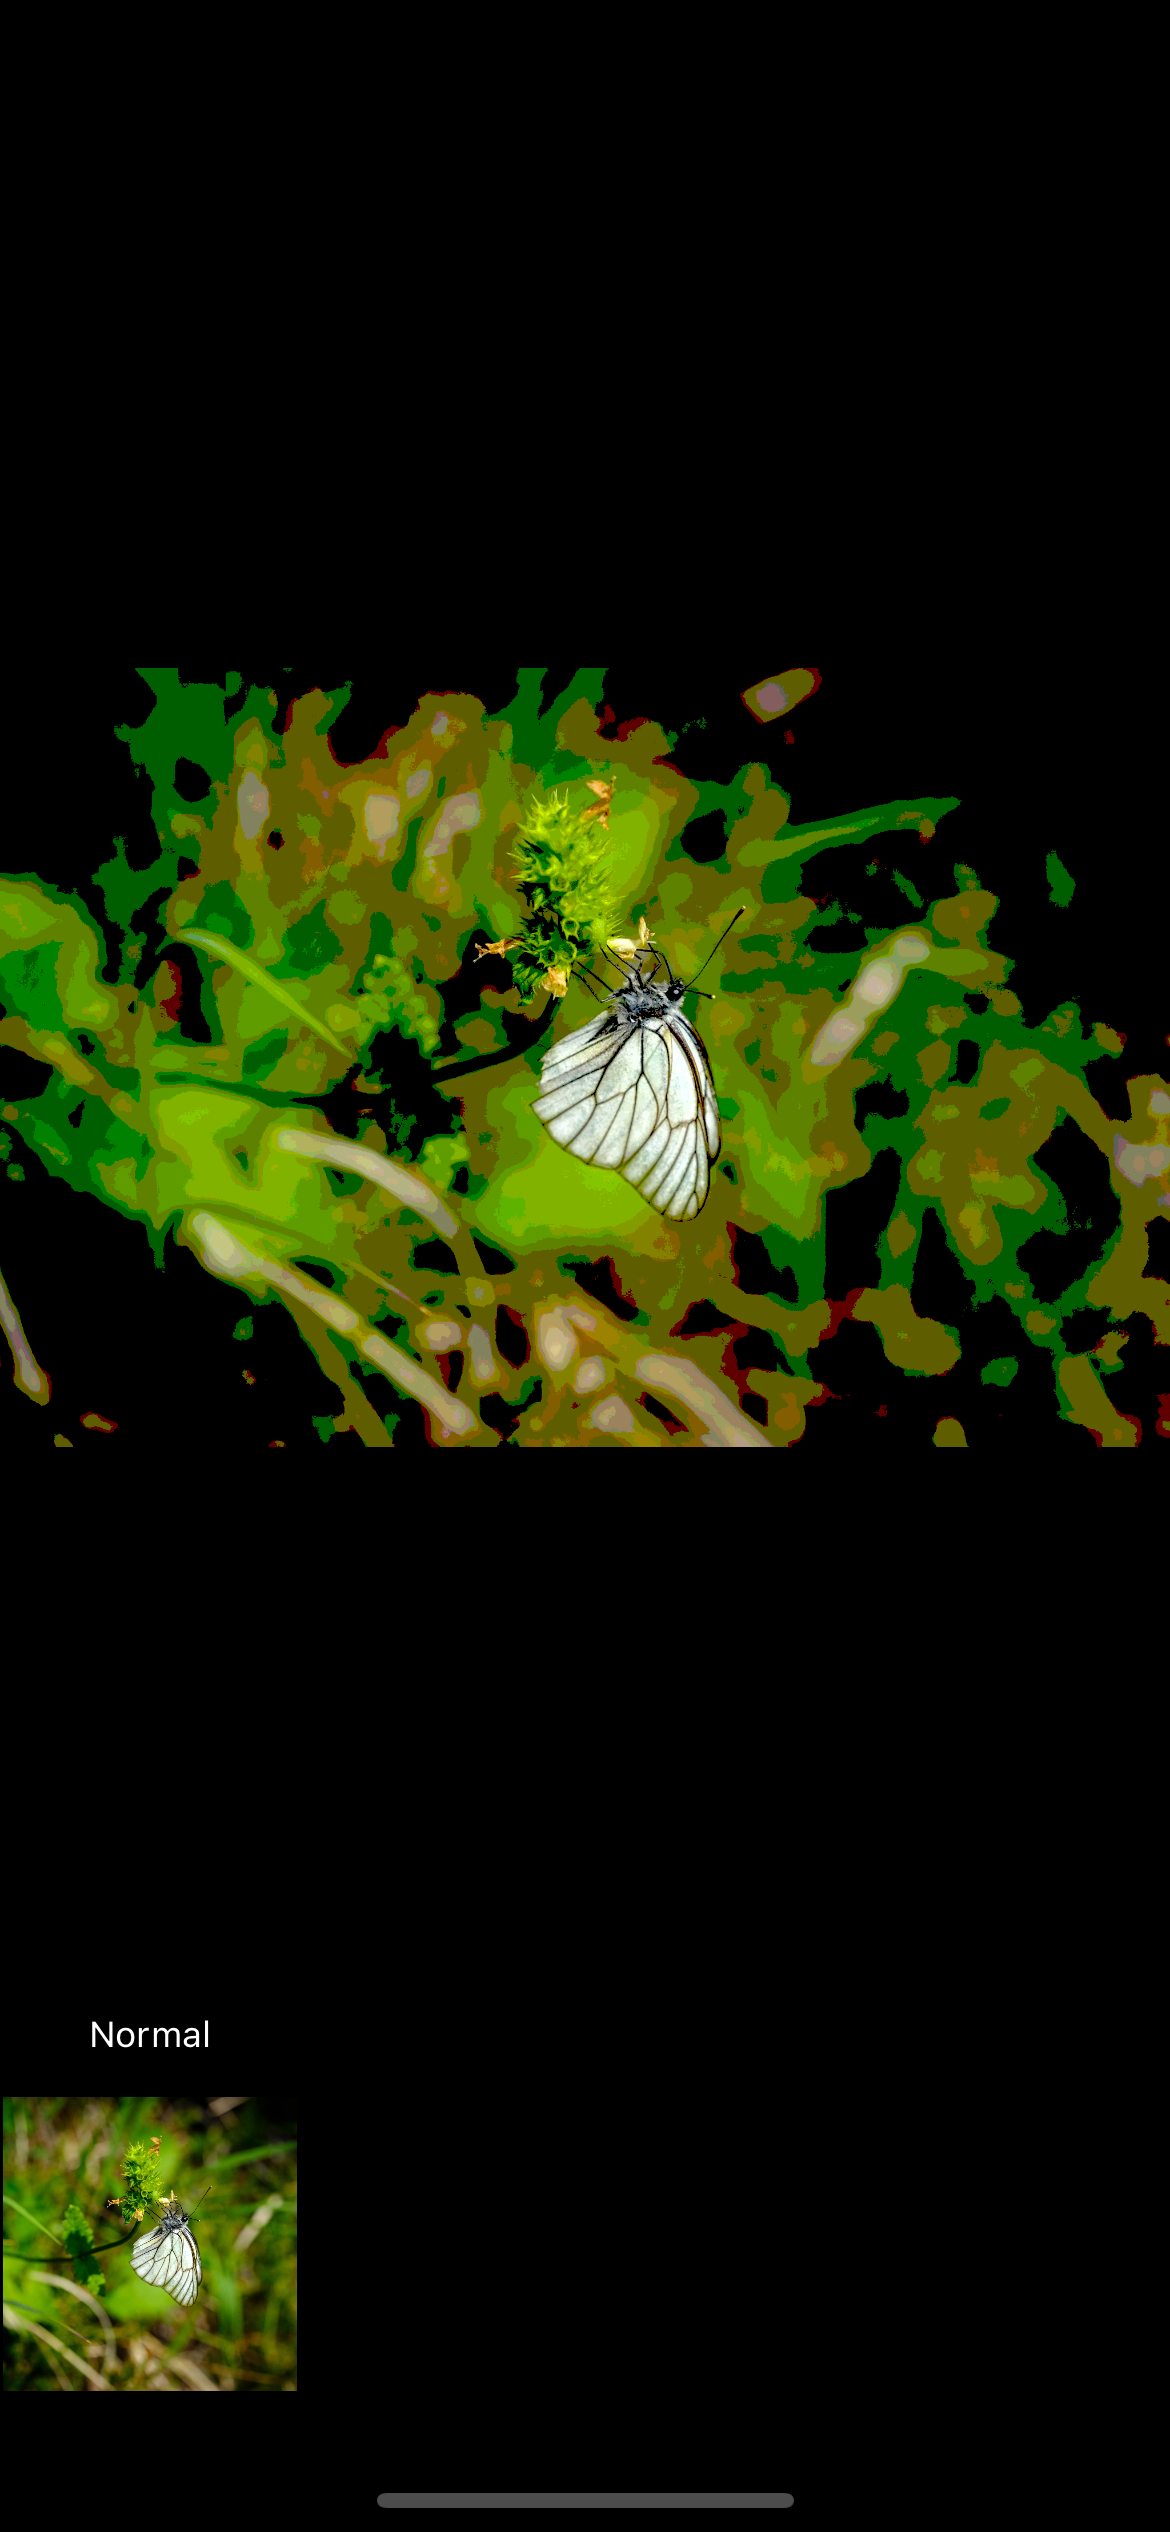 Butterfly with background blurred